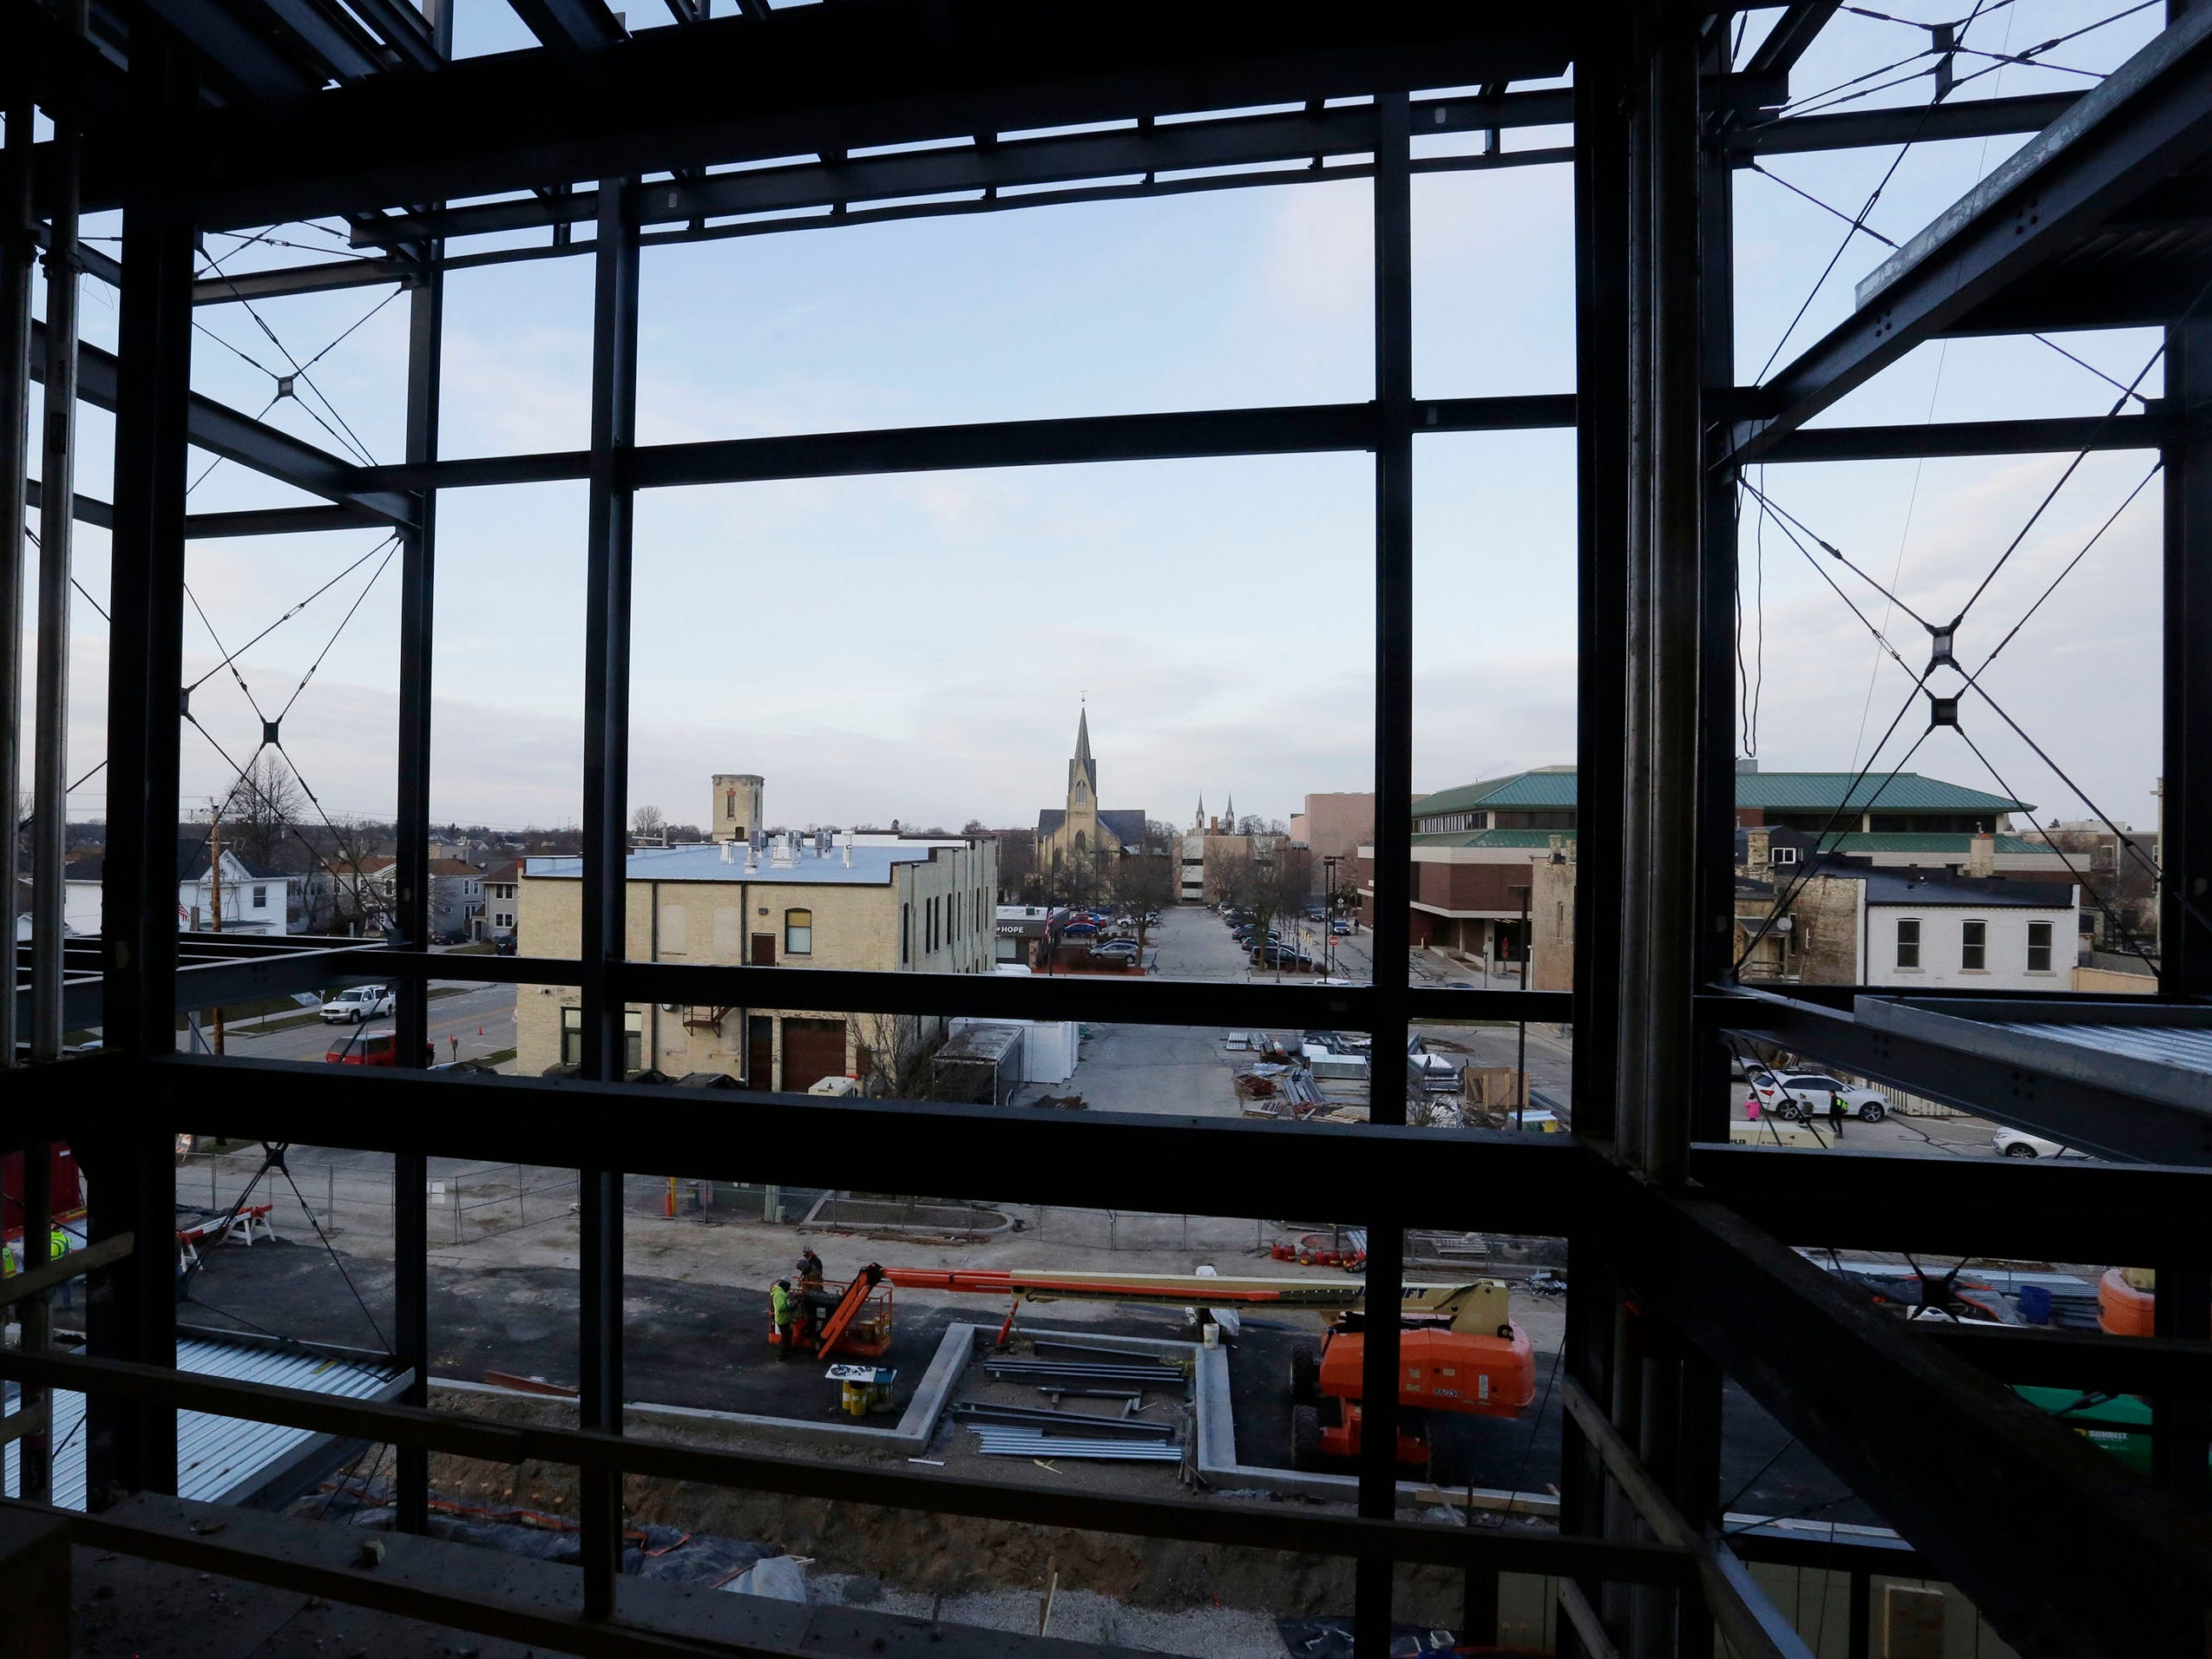 A view from the new front of Sheboygan City Hall during a tour of the 10.5 million dollar renovation project, Wednesday, December 5, 2018, in Sheboygan, Wis. The new front will feature a glassed in view of the city.